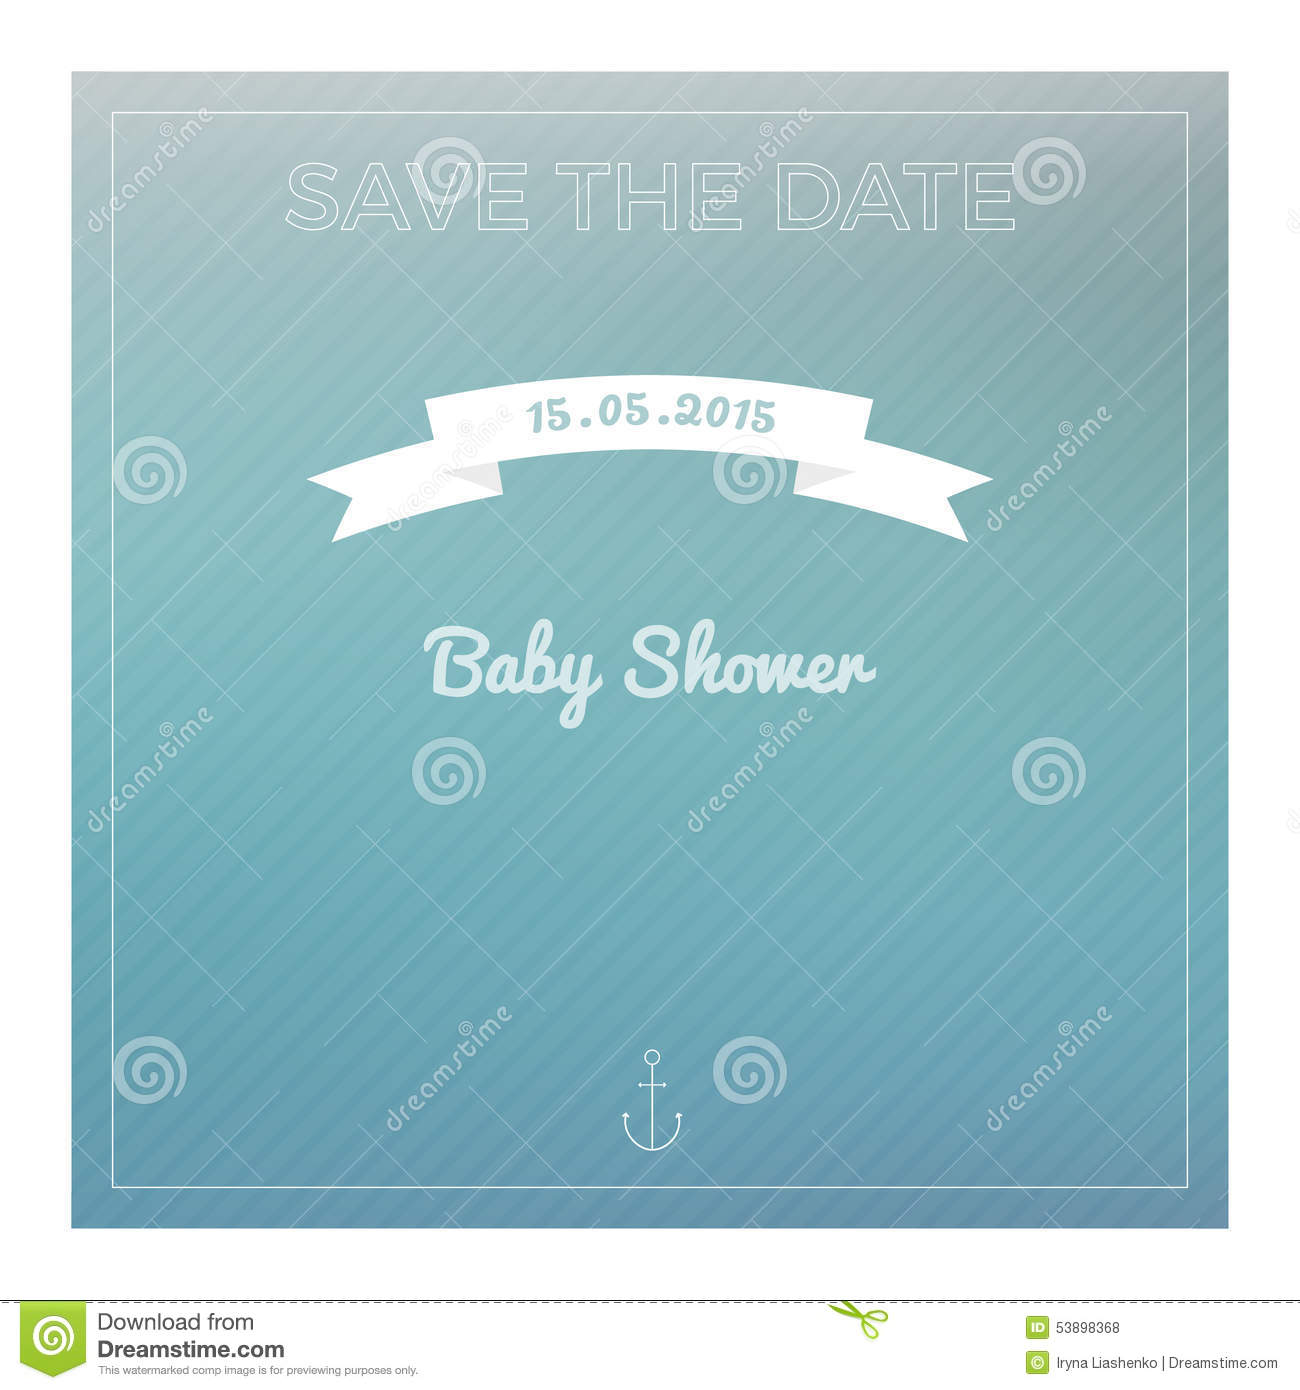 Baby Background Card Date Invitation Marine Modern Party Save Shower ...